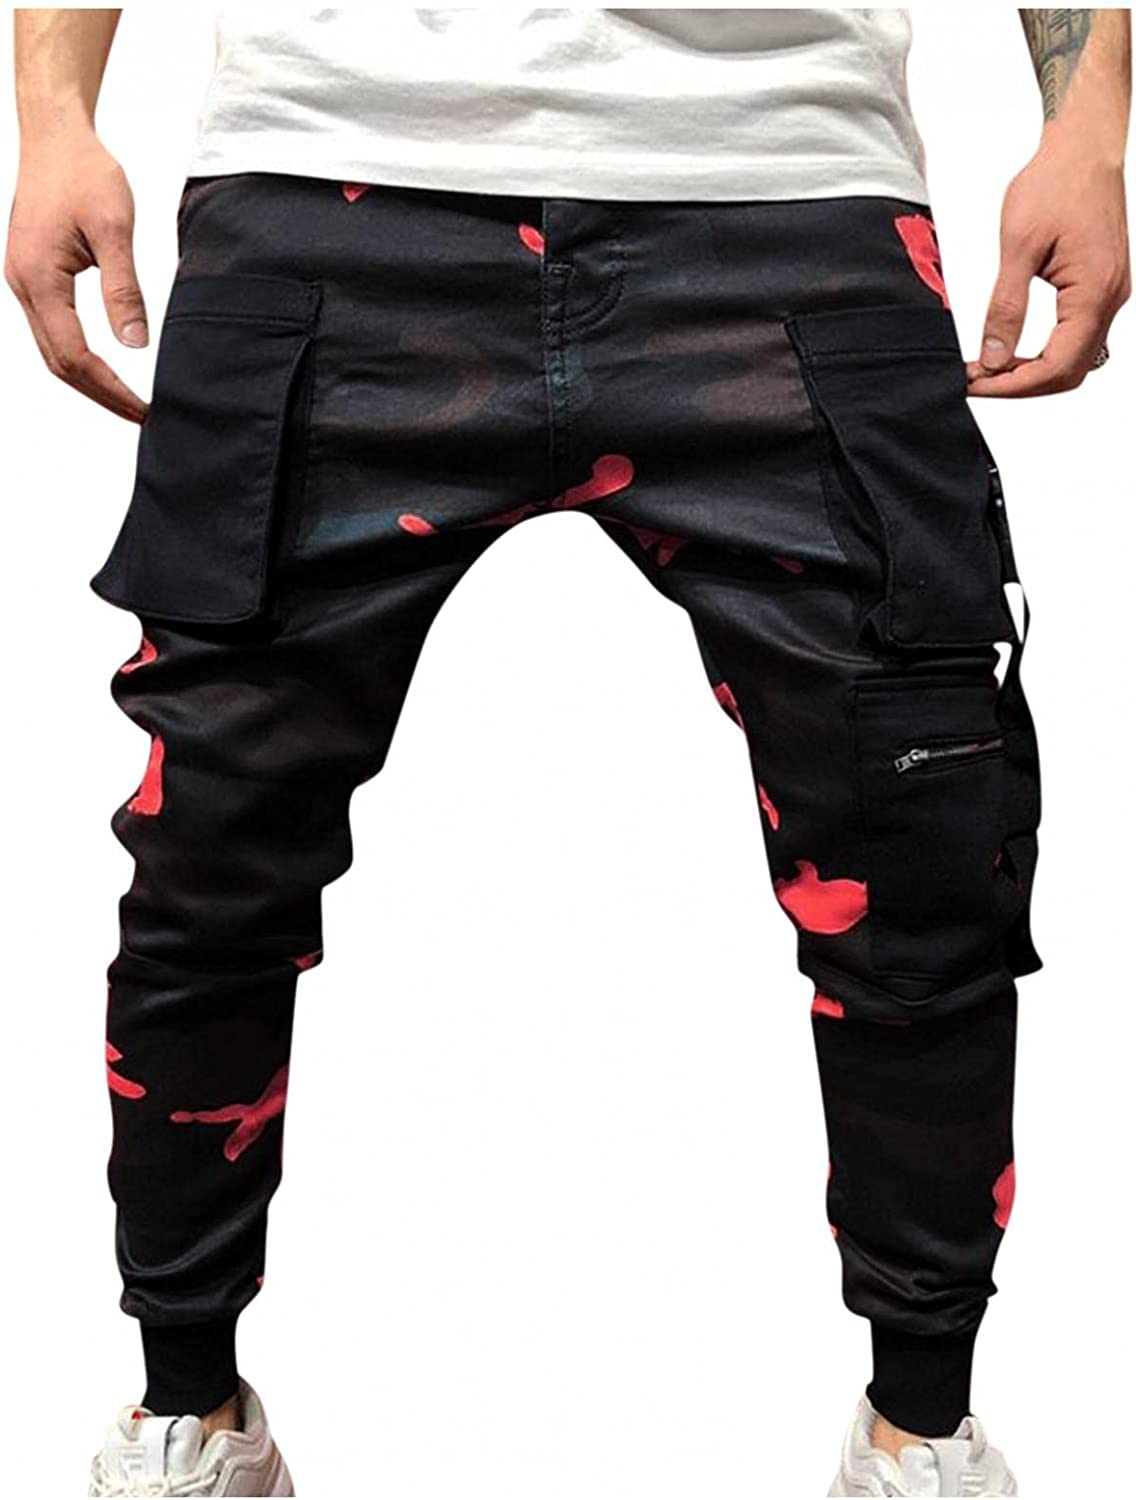 Huangse Camo Cargo Pants for Men Multi-Pockets Athletic Pants Casual Gym Sweatpants Slim Fit Running Joggers Track Pants